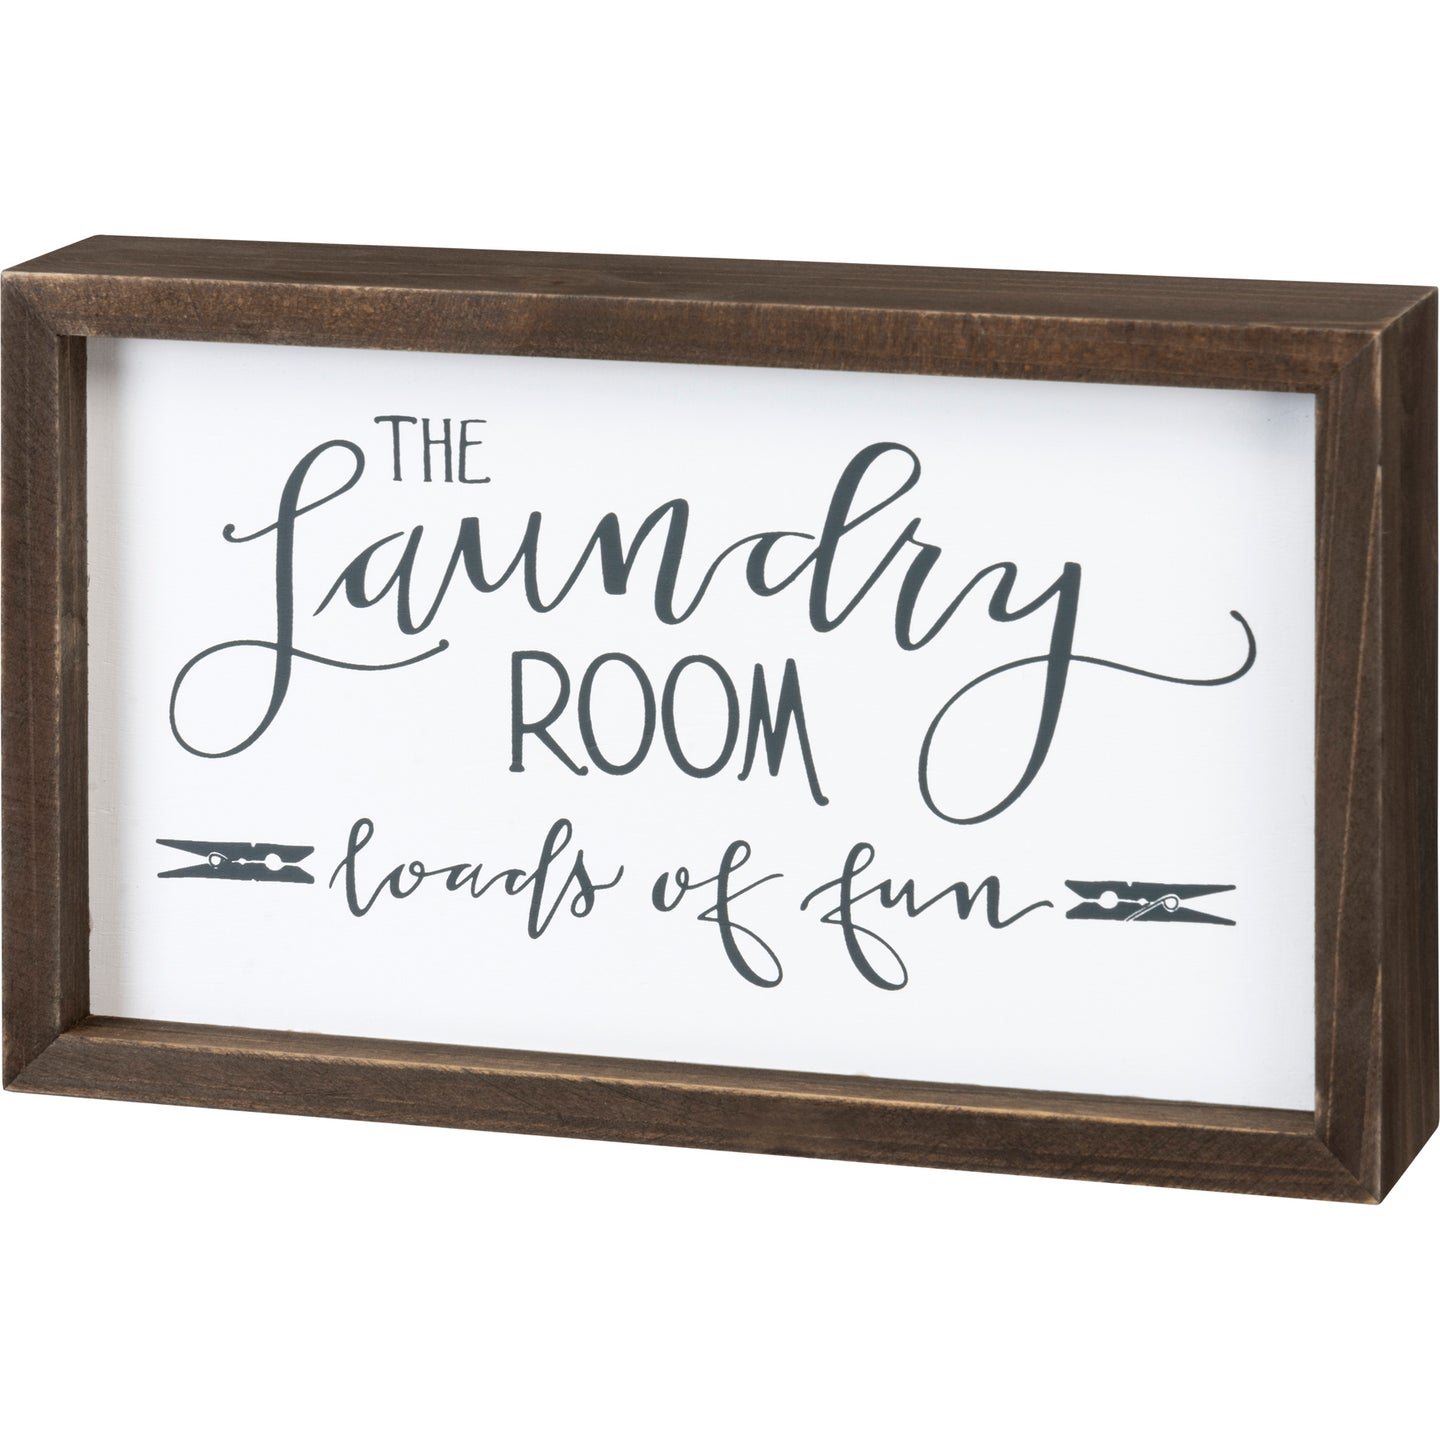 The Laundry Room Inset Box Sign - Vintage Crossroads